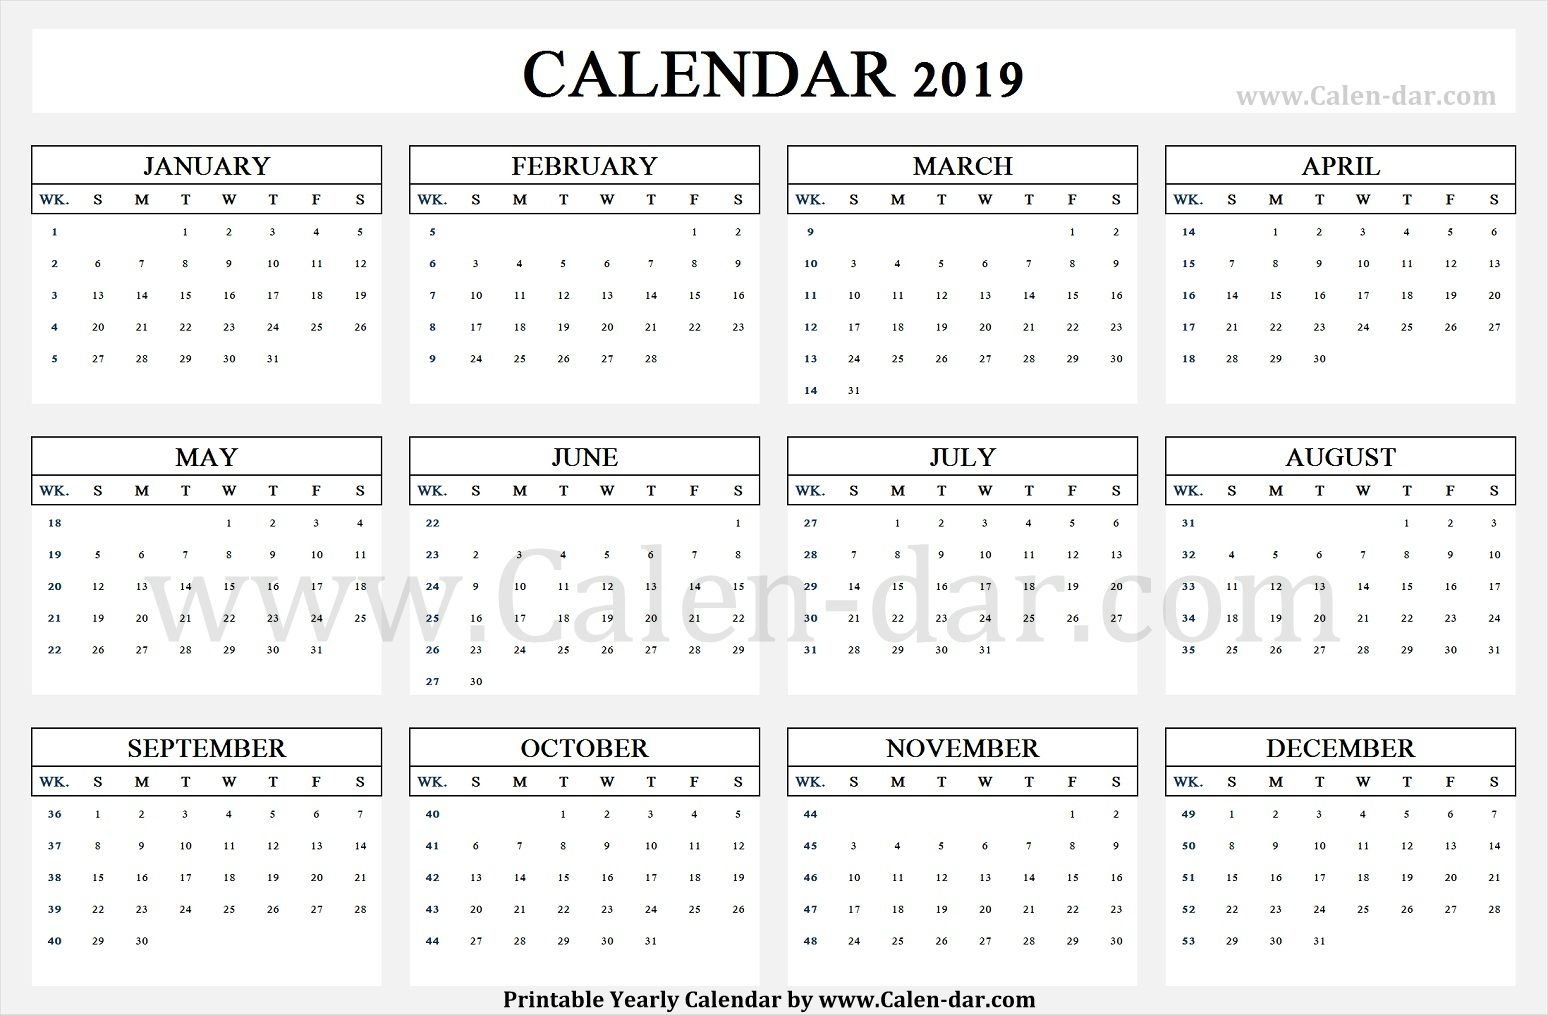 Calendar 2019 Week Wise Printable Template Calendar Template